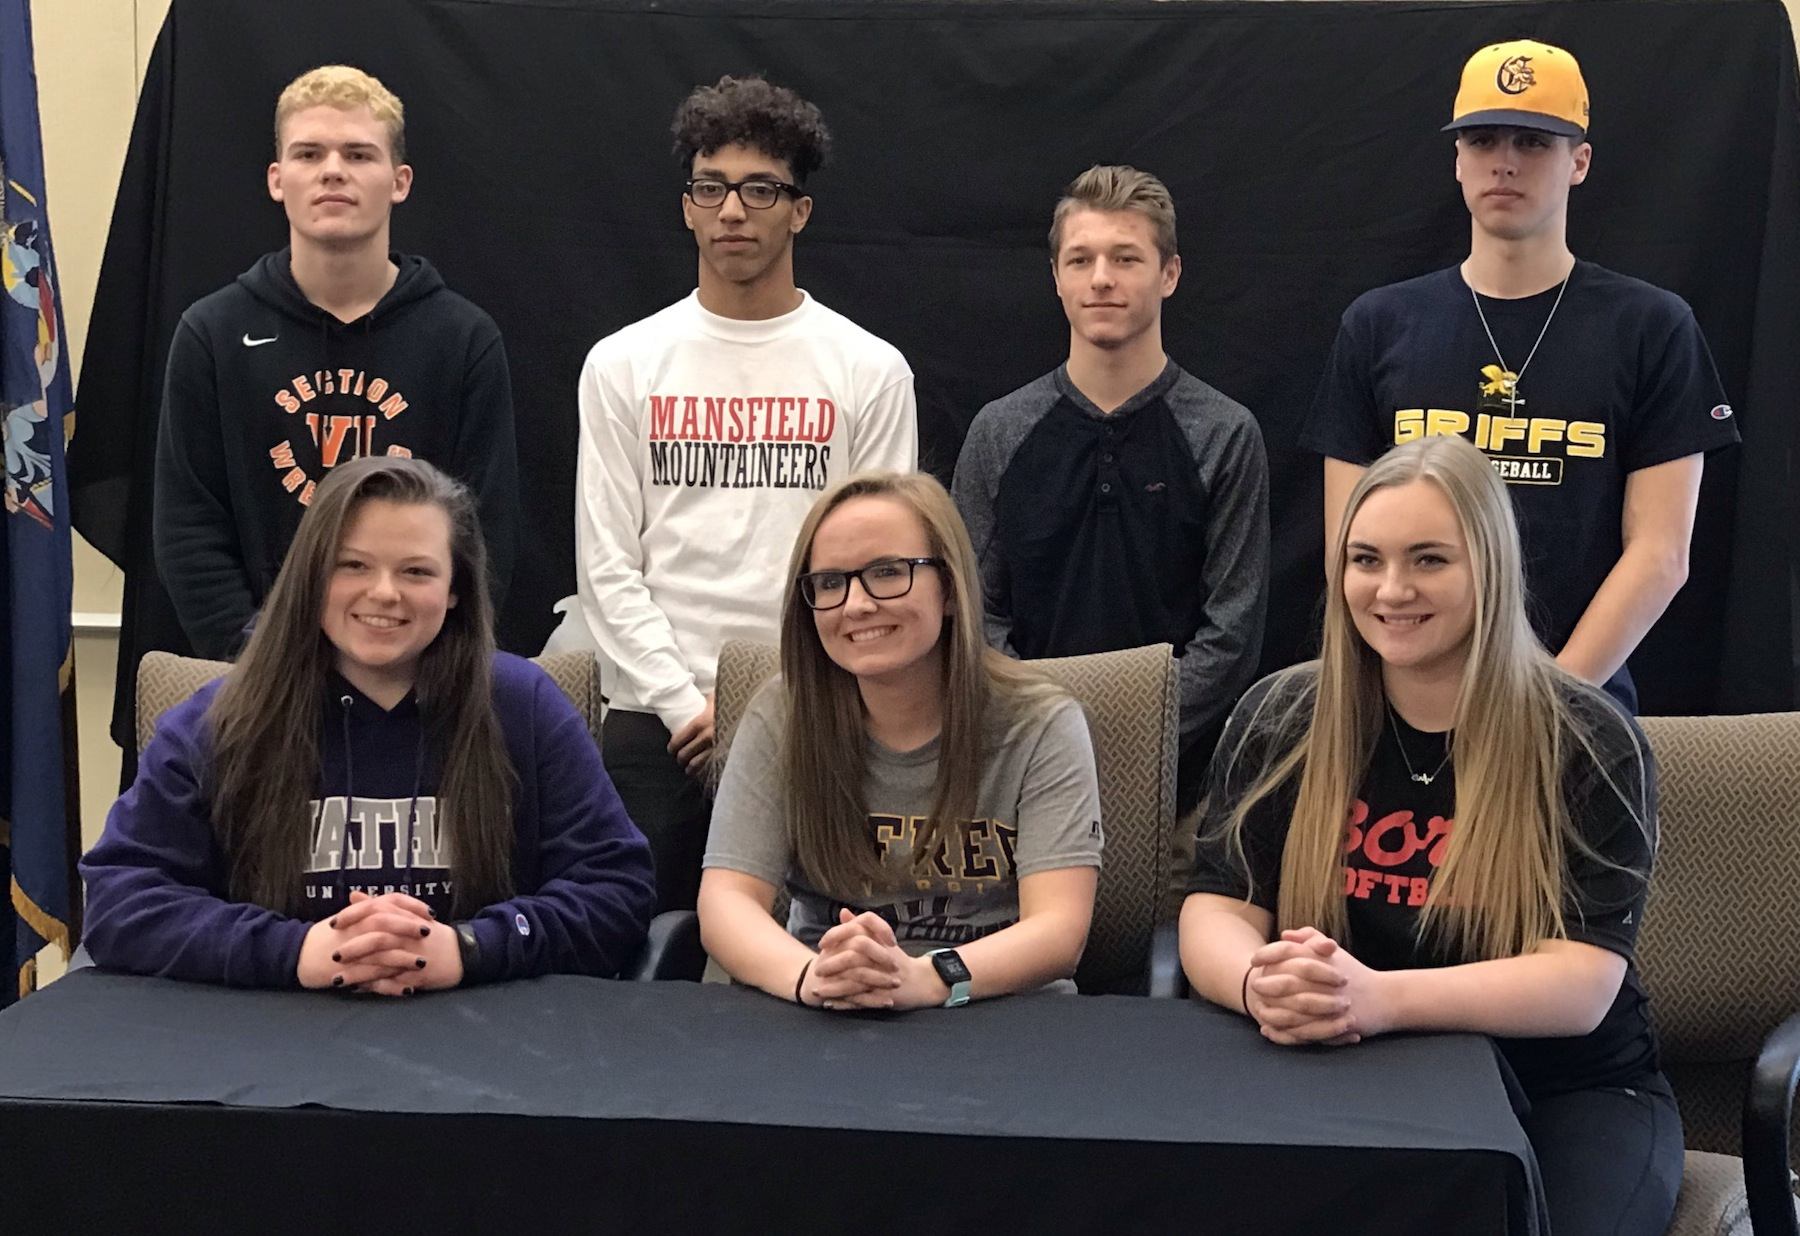 The seven seniors who sign to extend their athletic careers into college. From left, back row, Josh Thibeault, Jordan Parks, Nick Stott and Tom Peltier. Front row, Selena Justus, Mackenzie Grosskopf and Mackenzie Quider. (Photos by David Yarger)